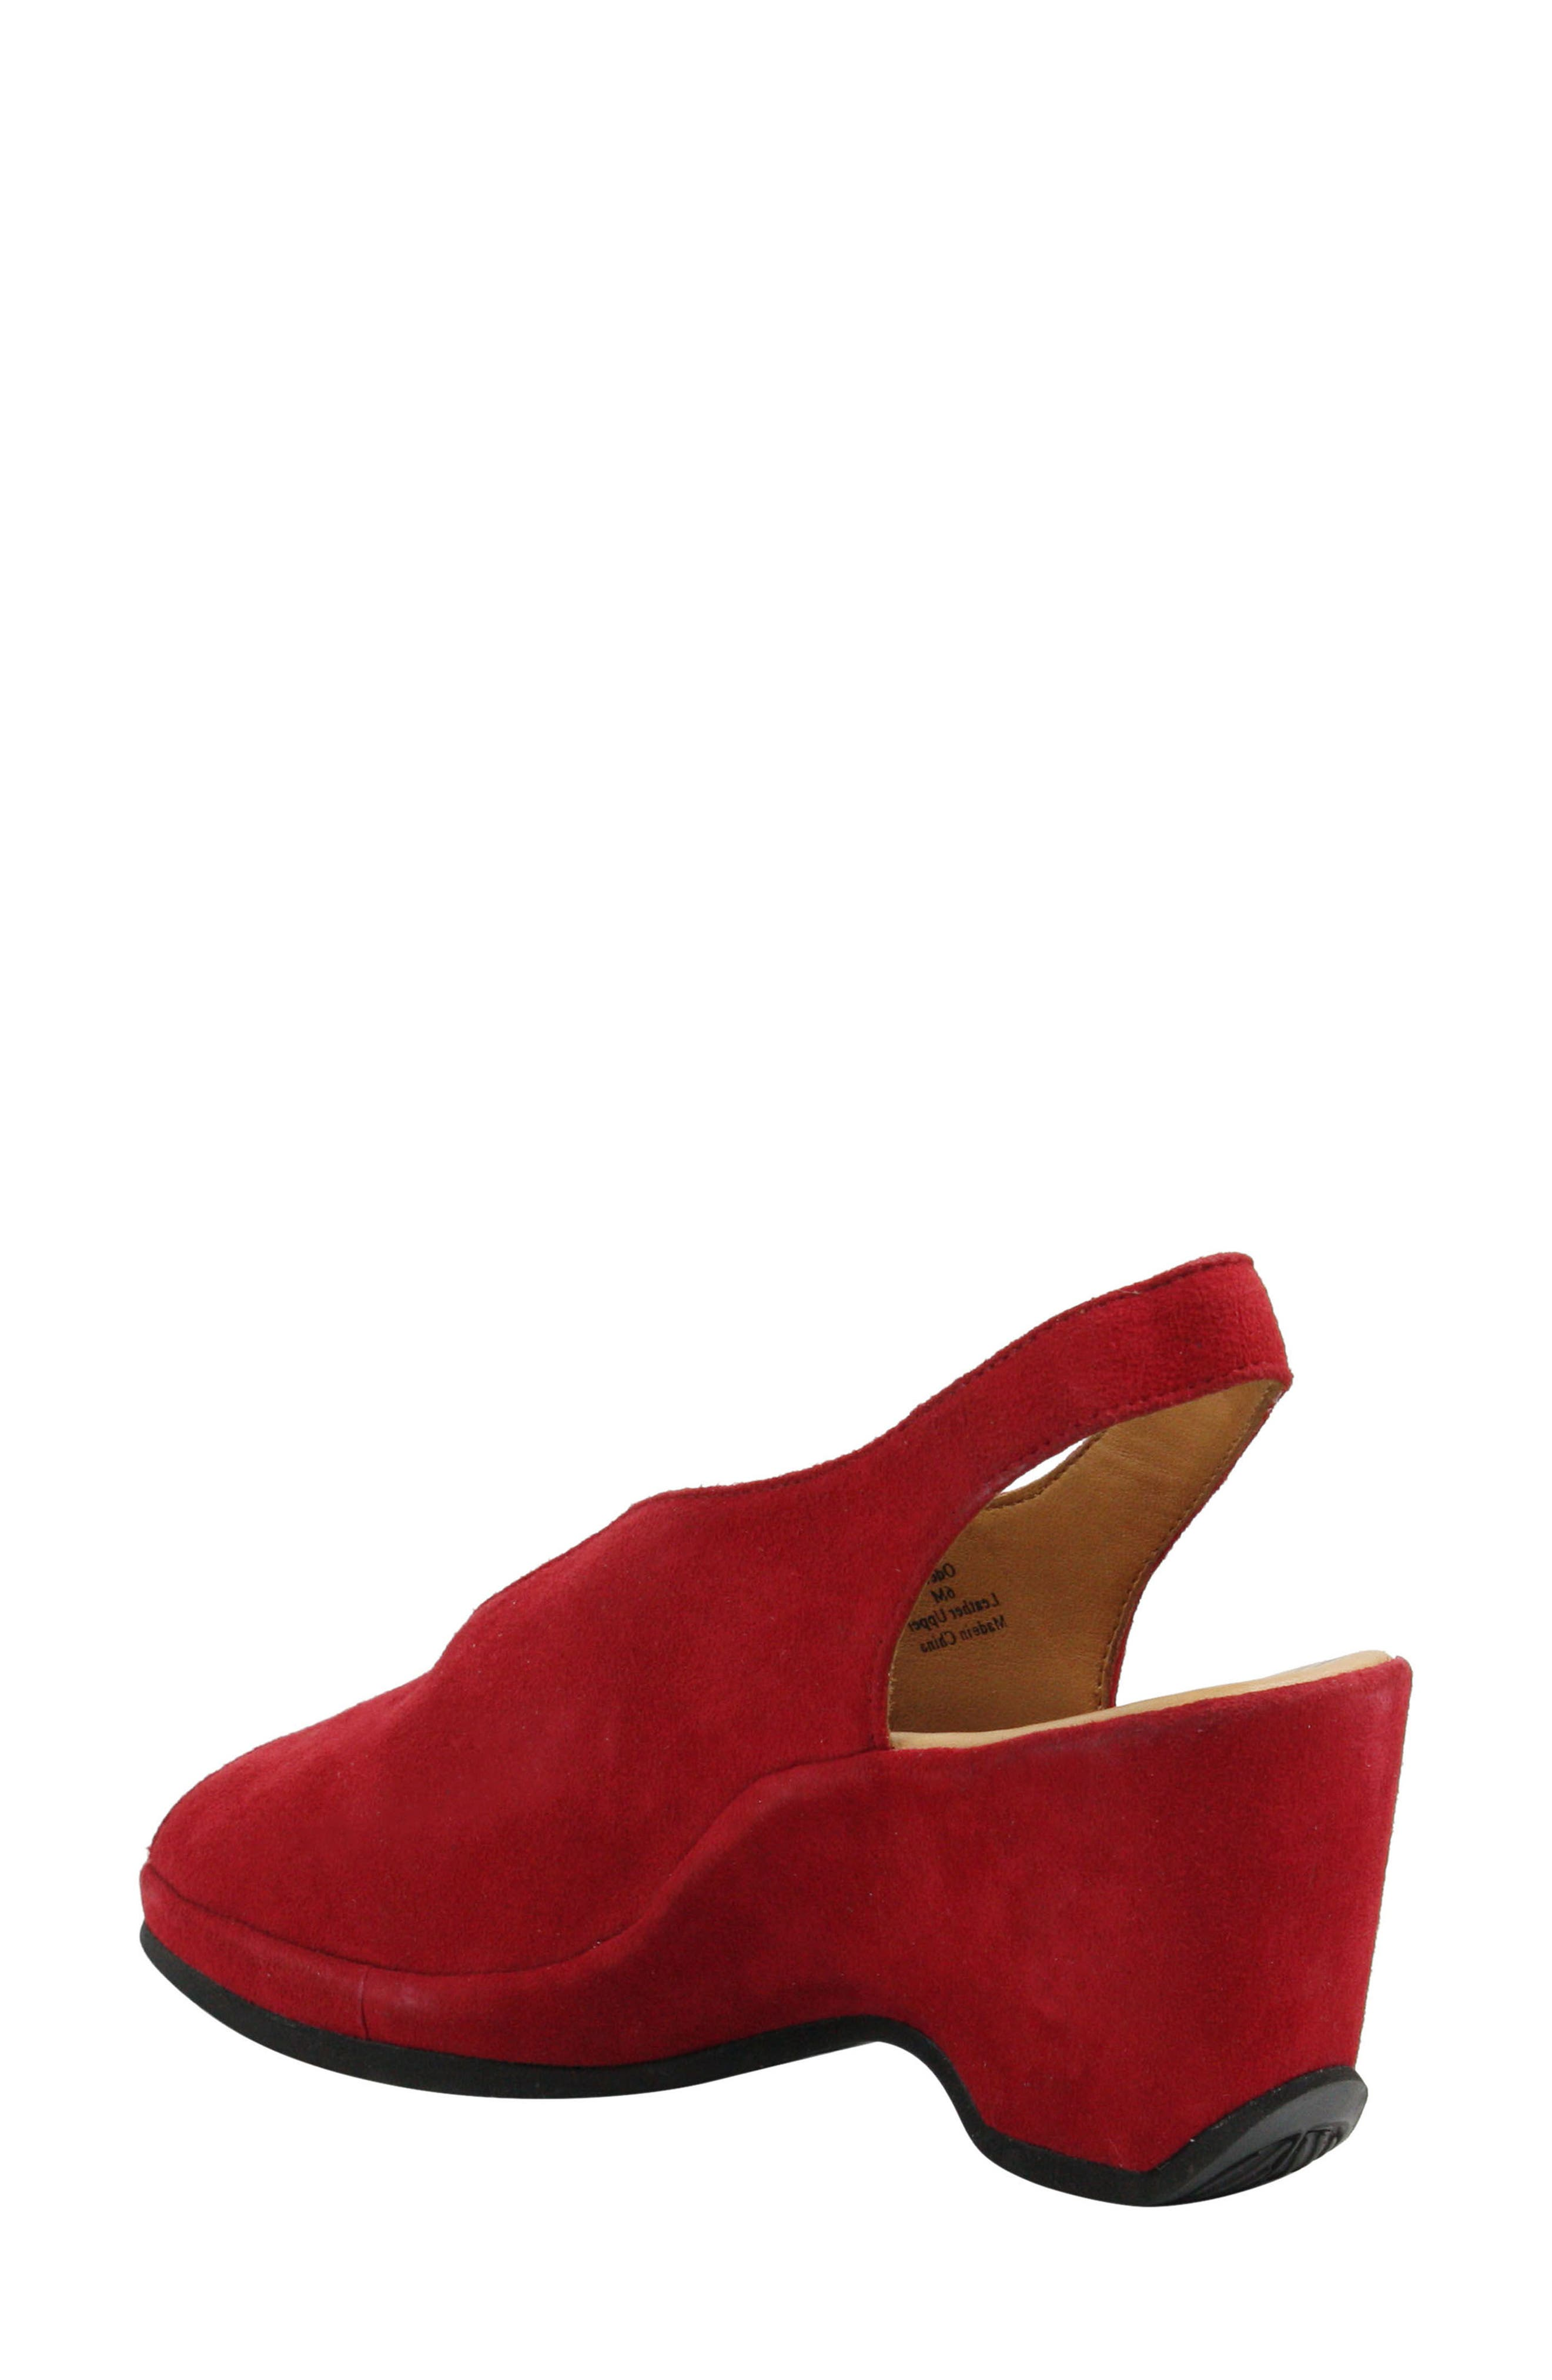 Odetta Slingback Wedge,                             Alternate thumbnail 2, color,                             Bright Red Suede